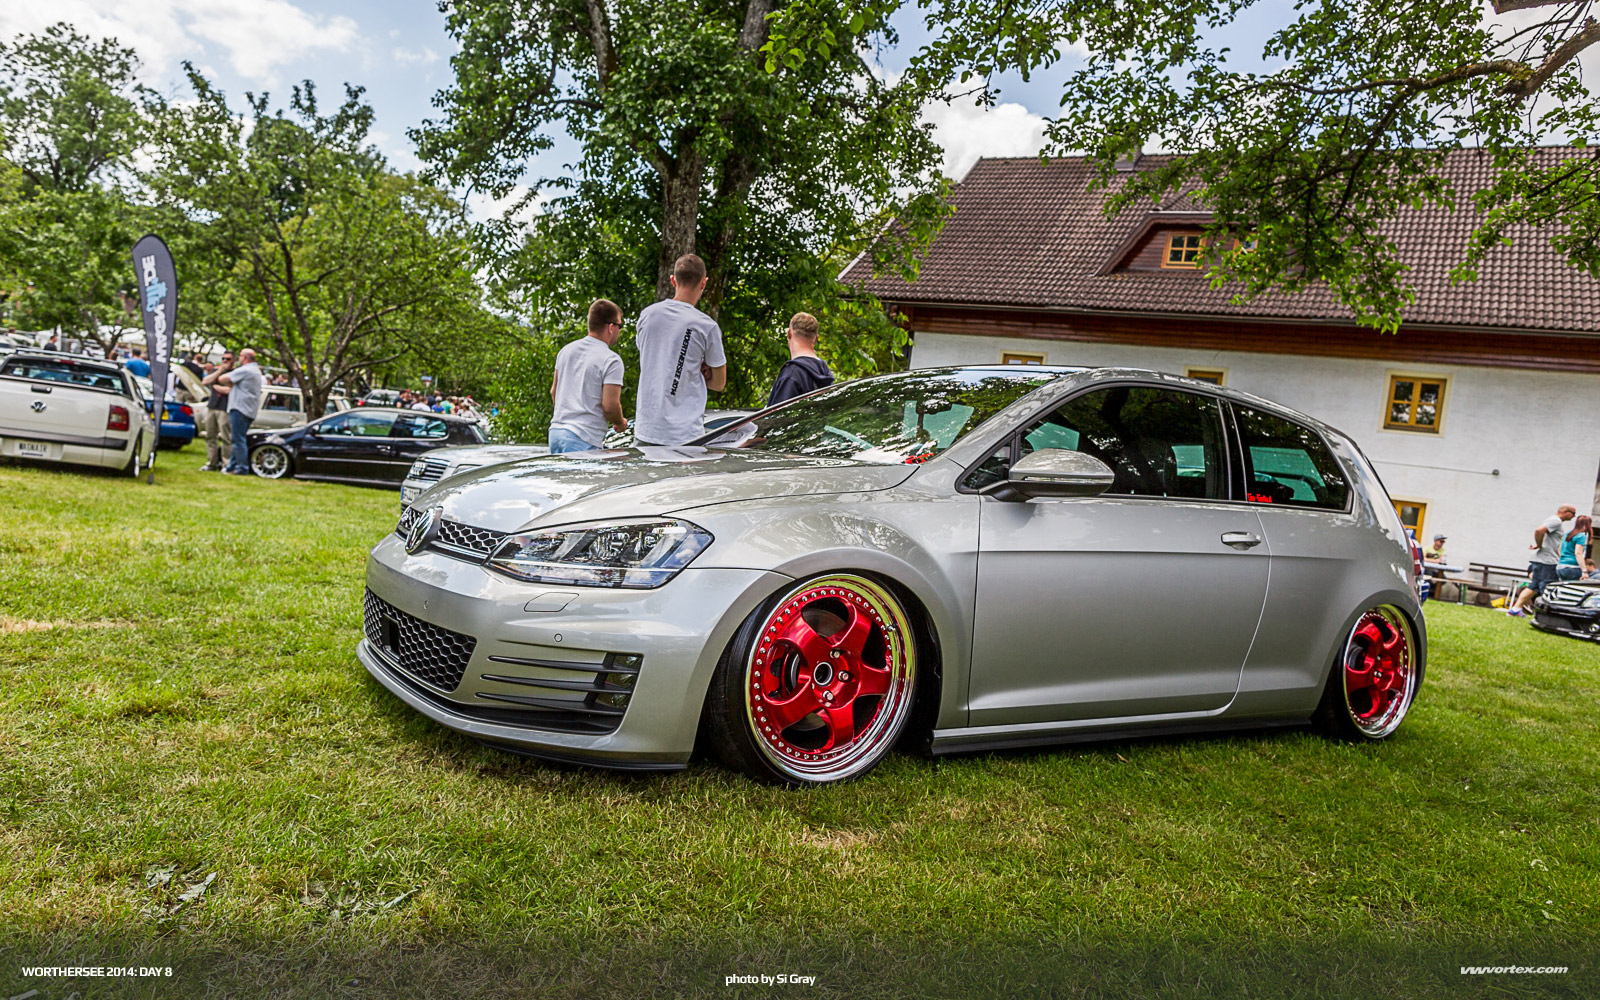 2014-Worthersee-Day-8-Si-Gray-1106